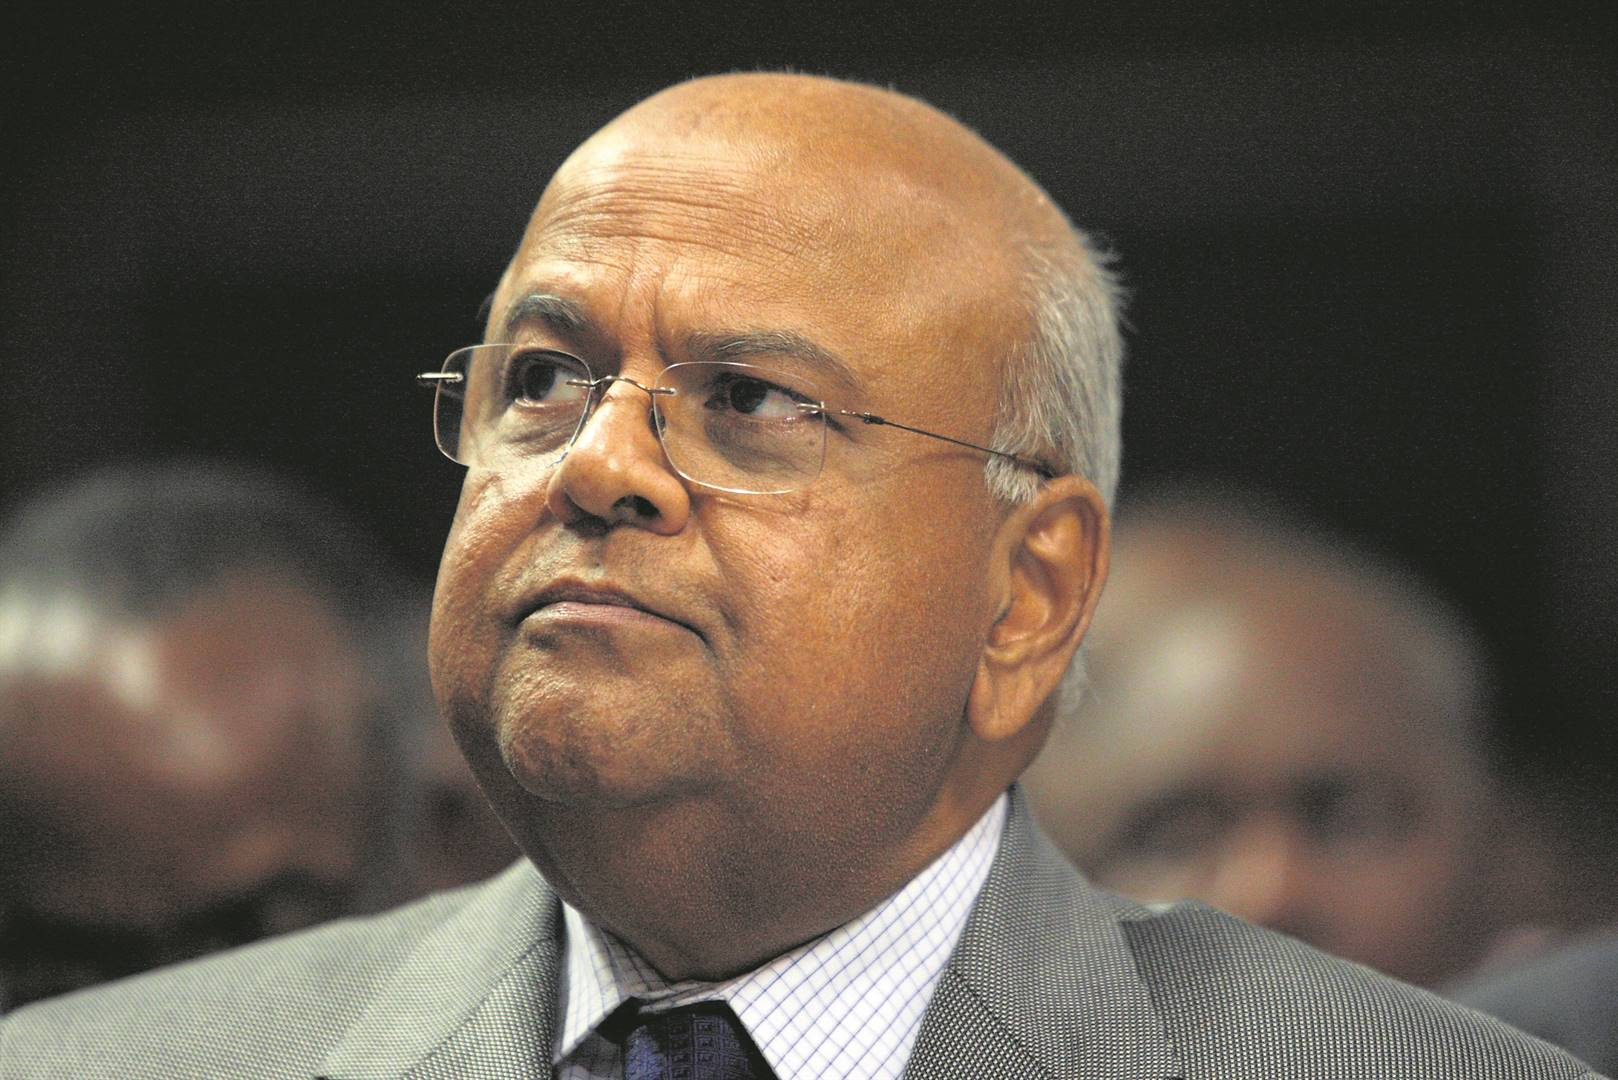 News24.com | Pravin Gordhan won't be intimidated, says his lawyers after Equality Court loss to EFF